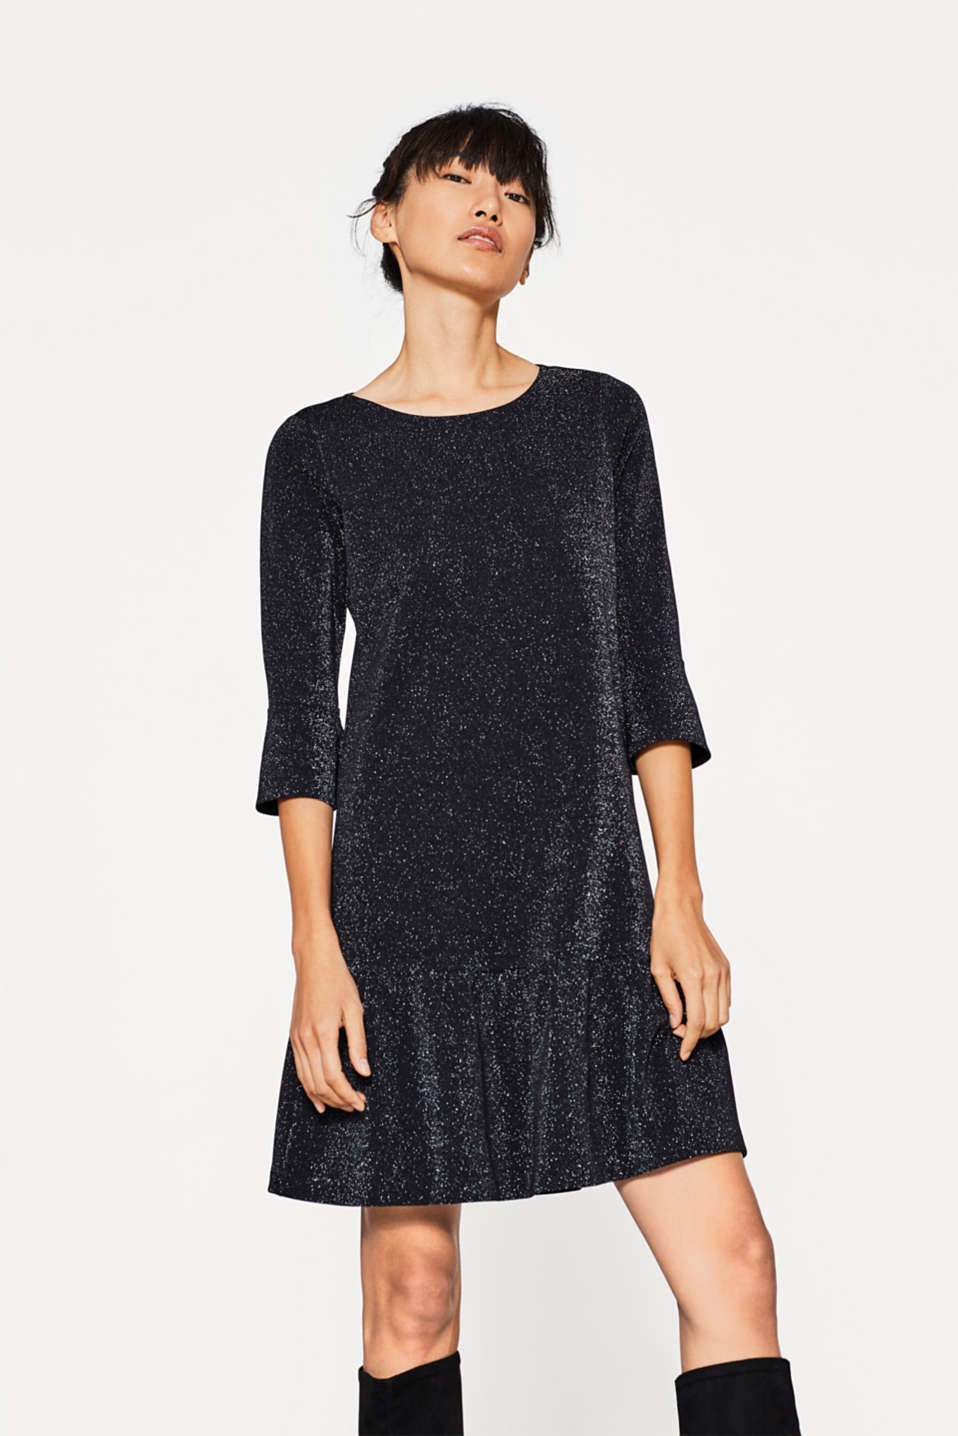 Esprit - Glitzerndes Jersey-Kleid in femininem Look